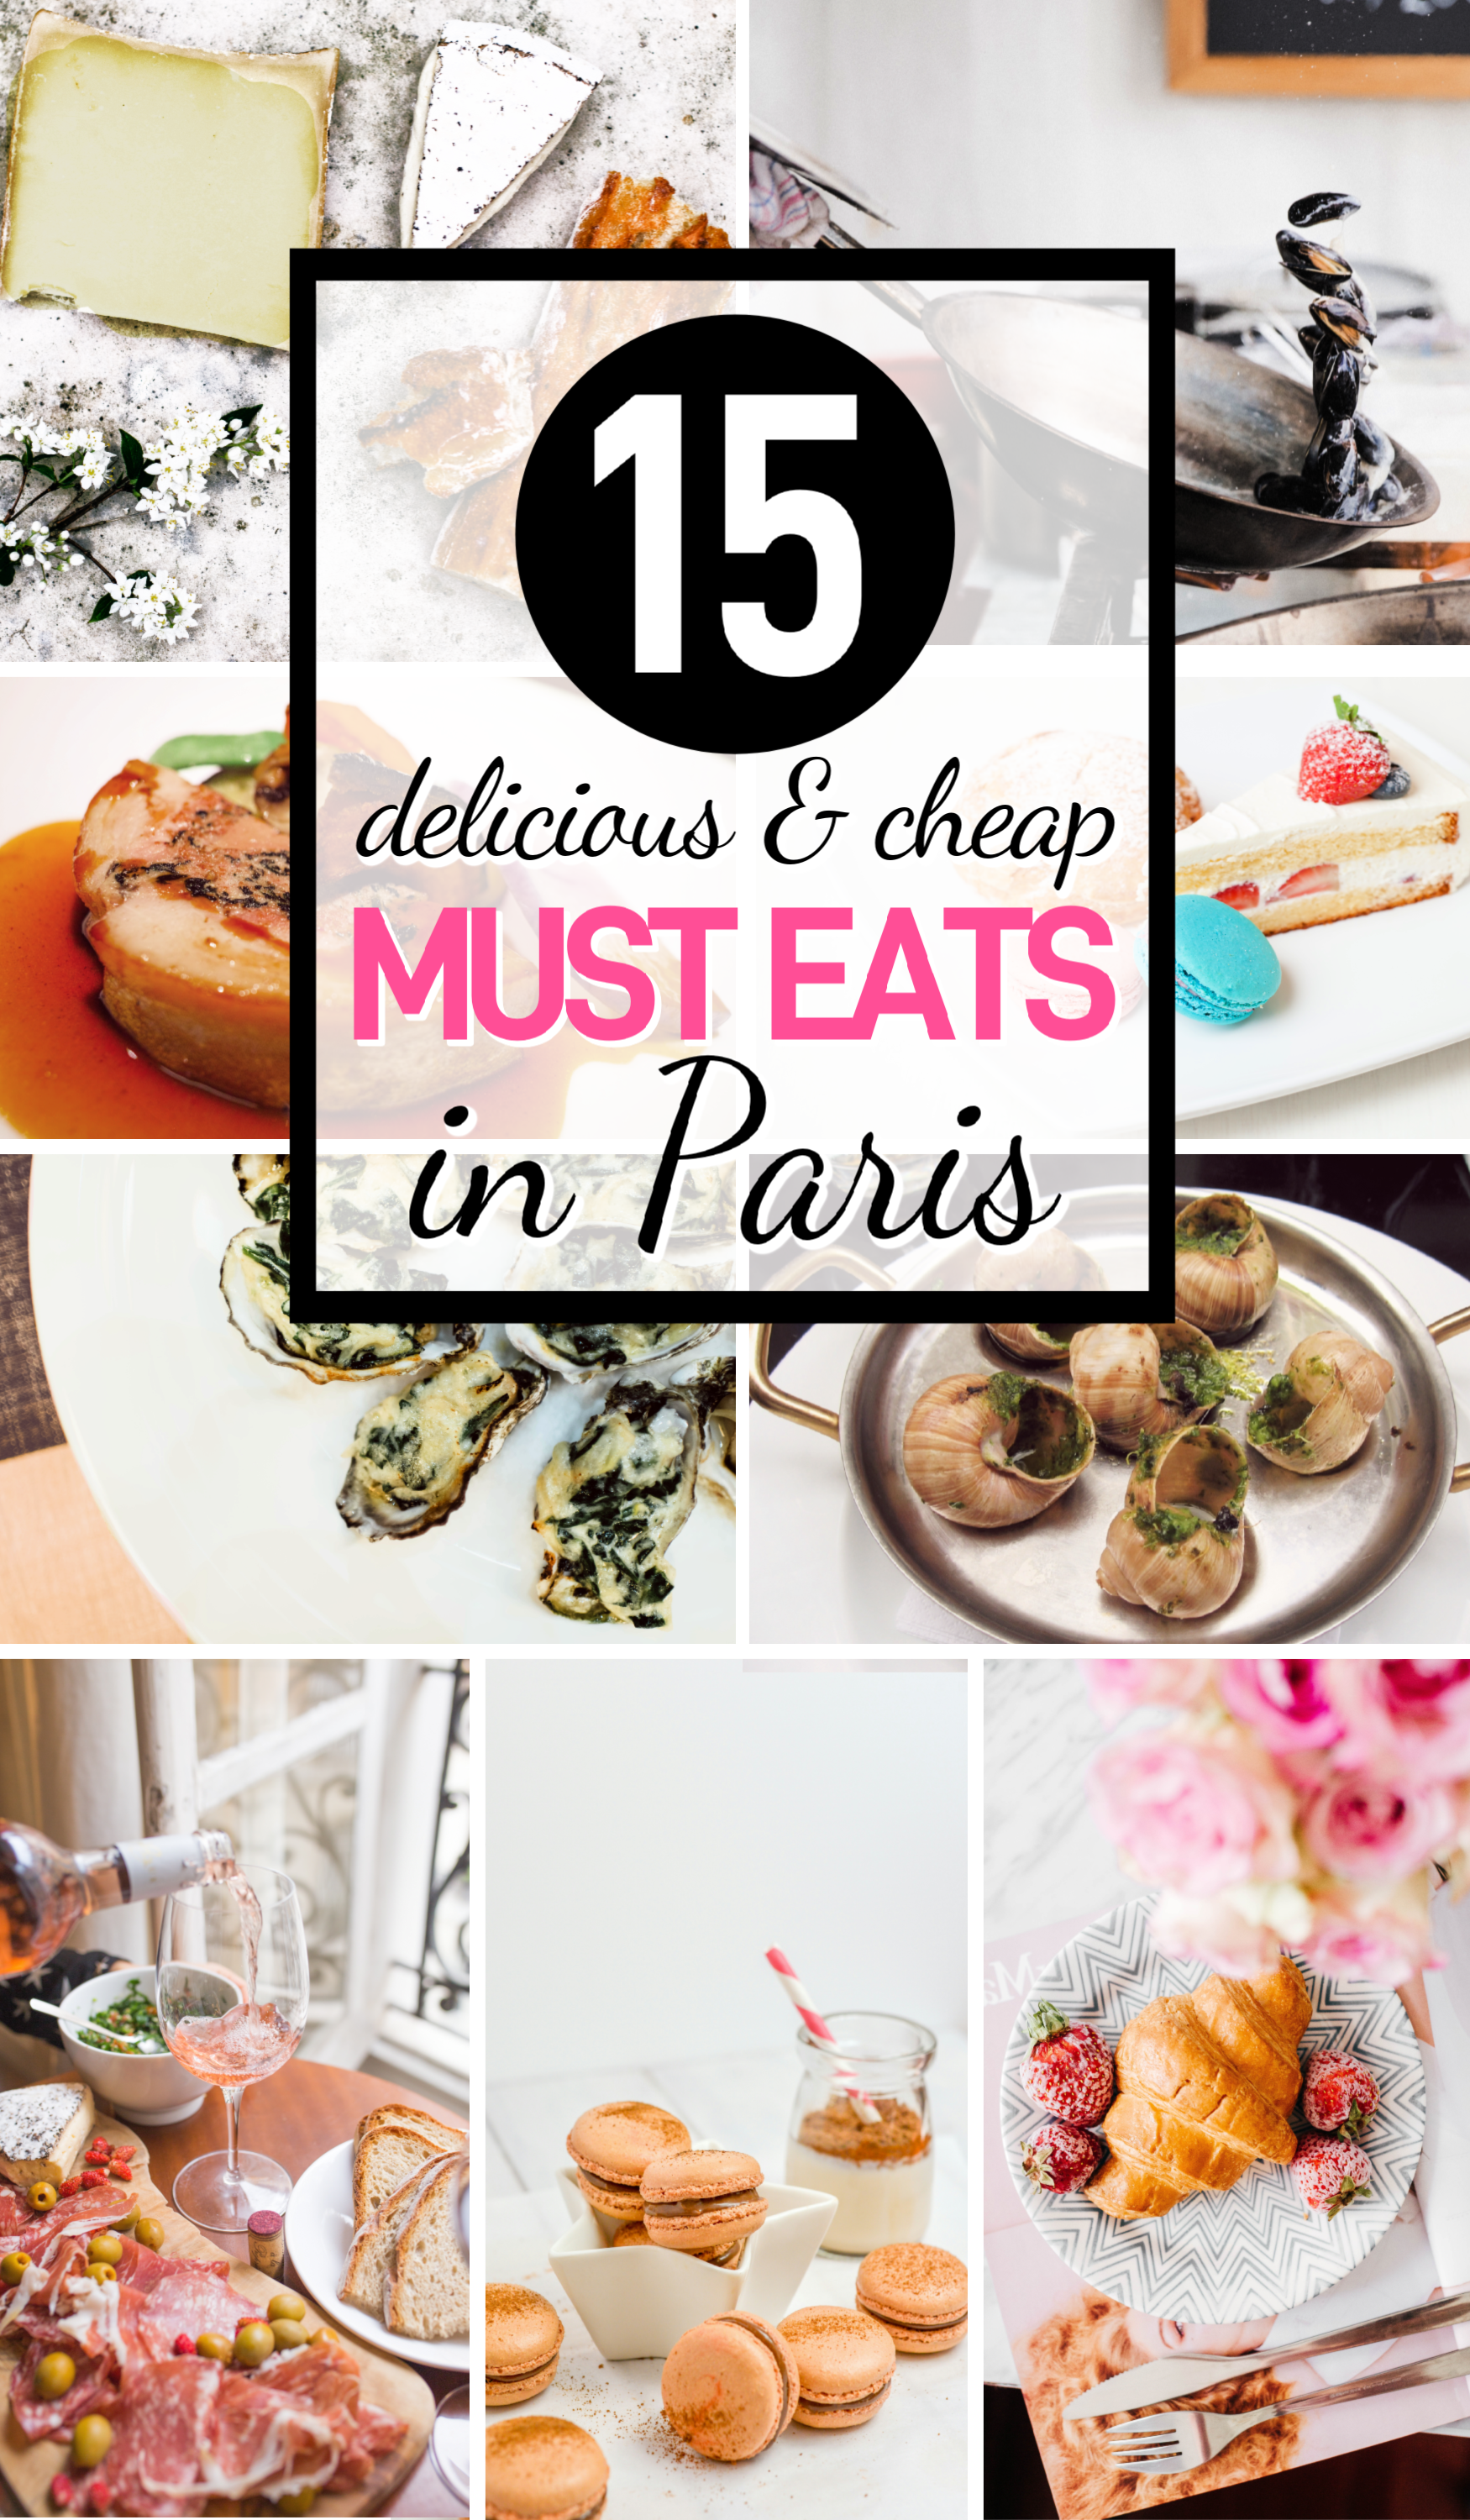 15 things you MUST EAT in Paris! If you're looking for the